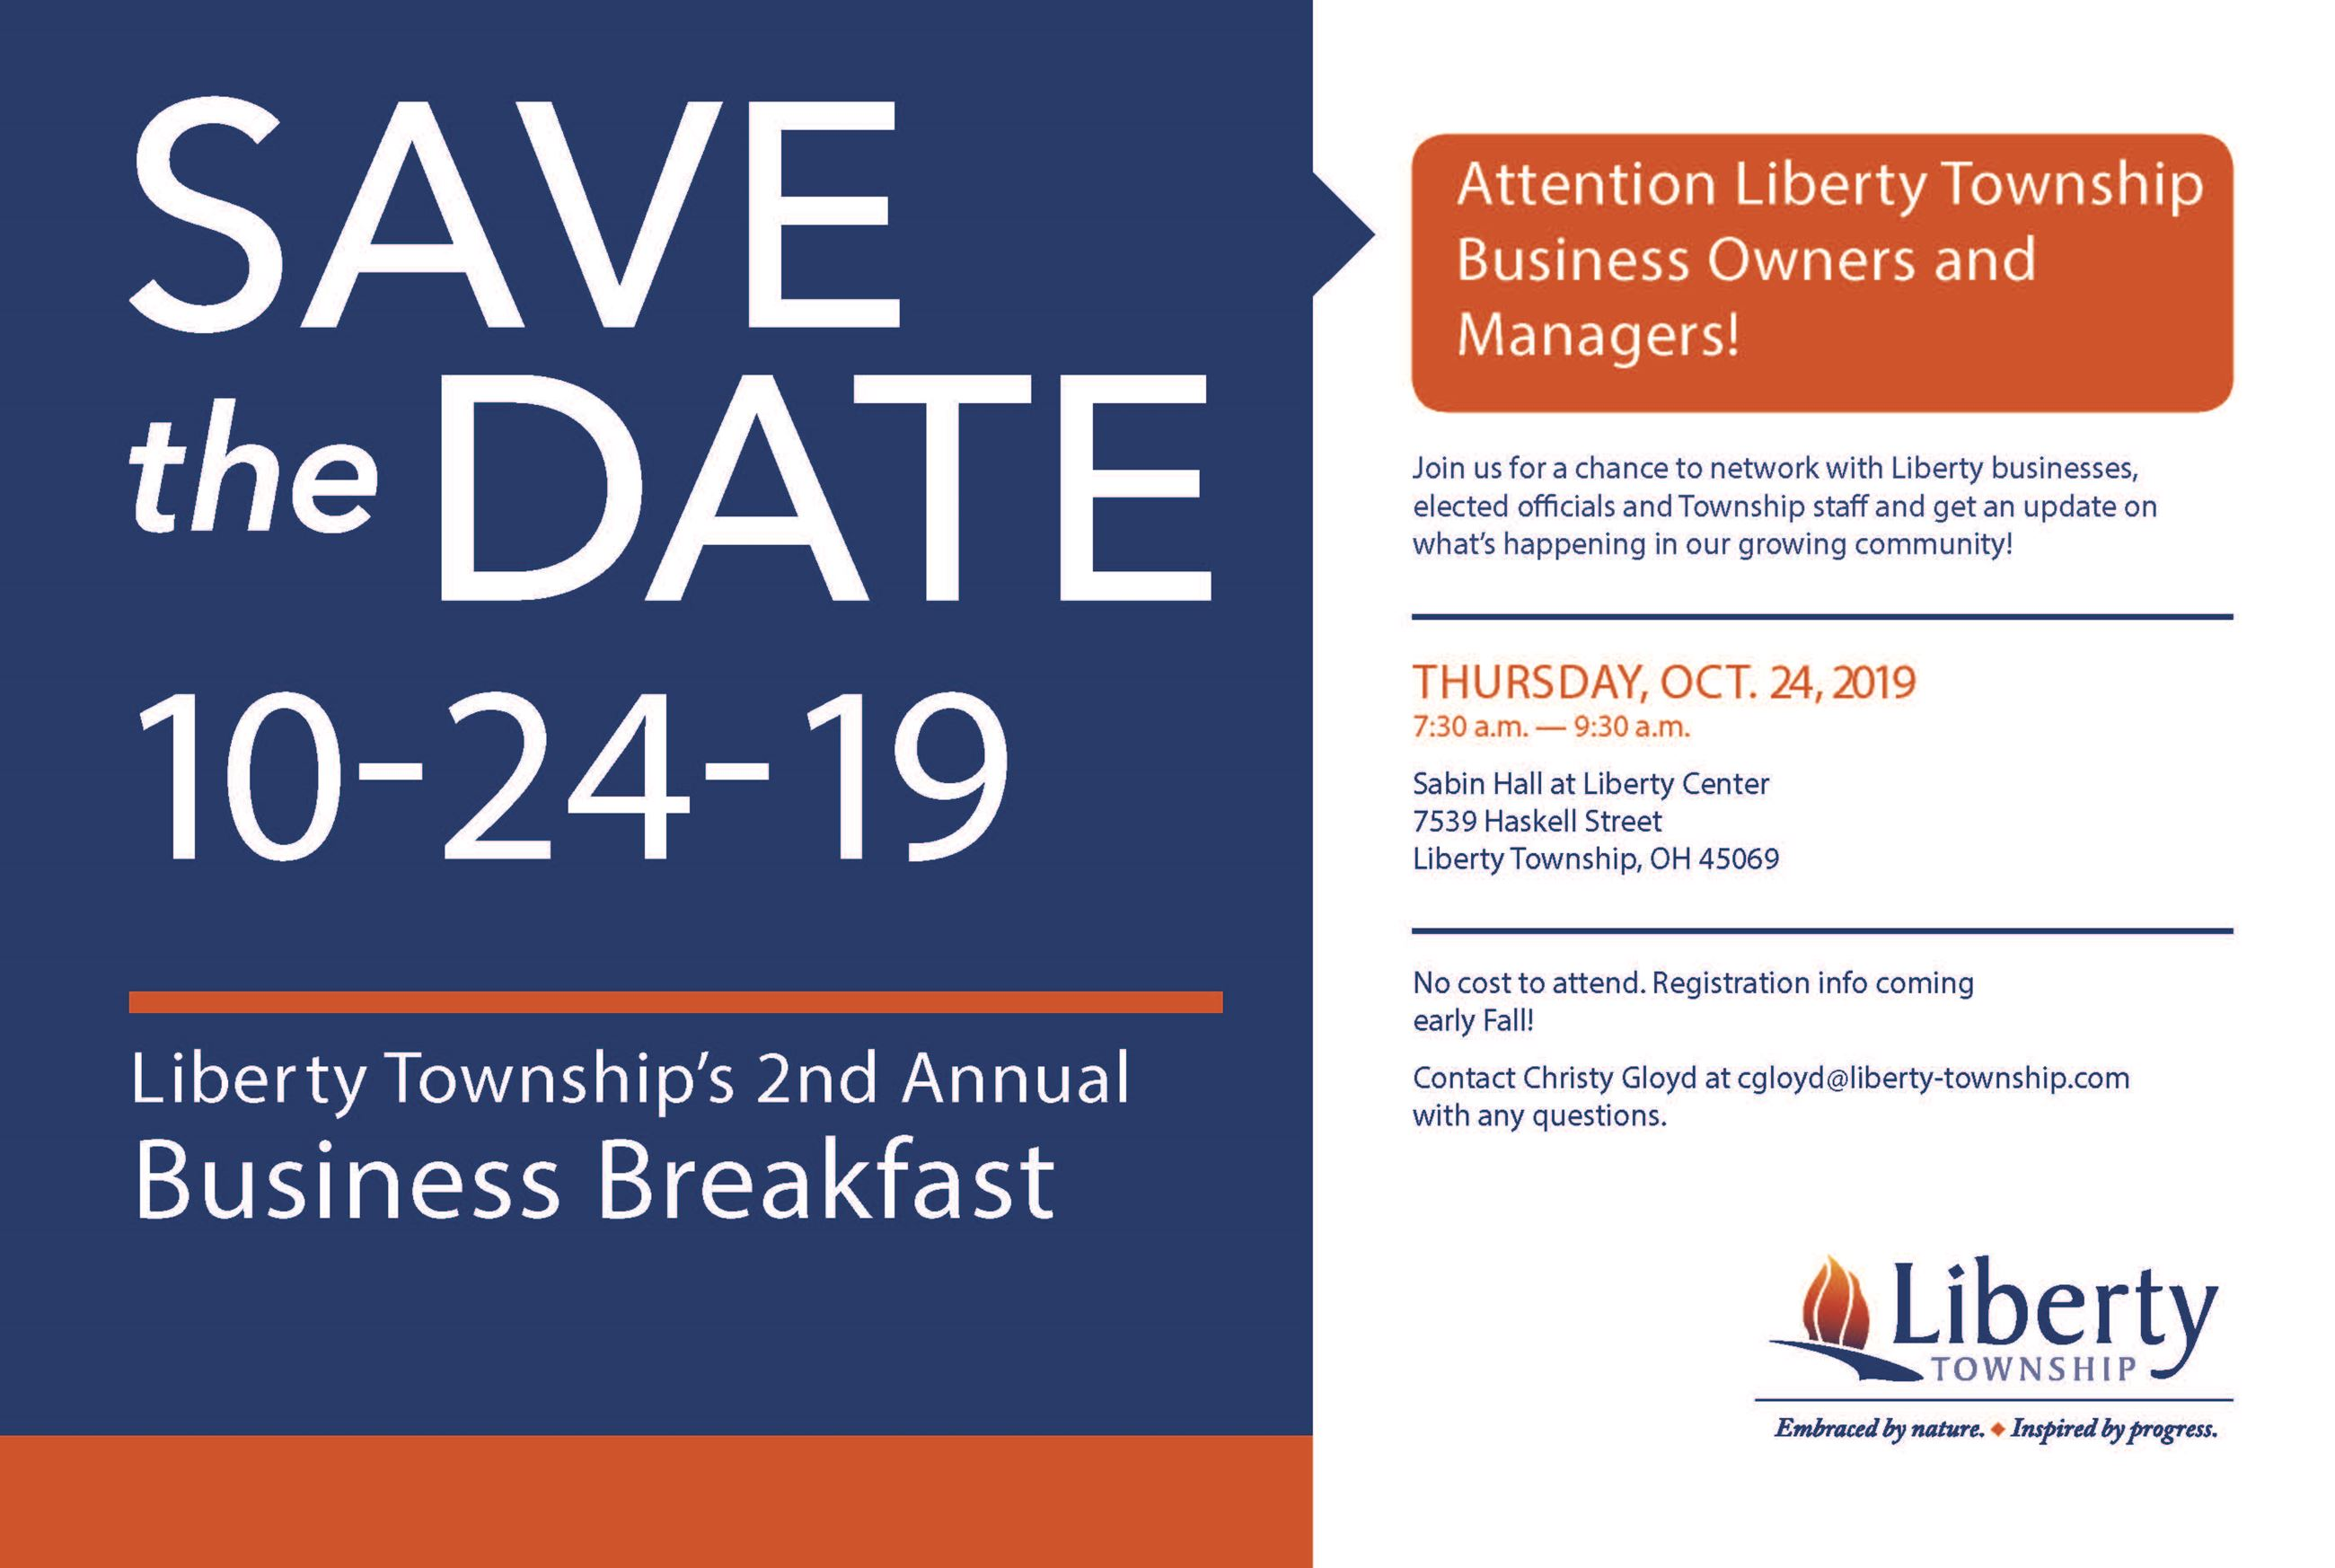 2019 Business Breakfast Save the Date